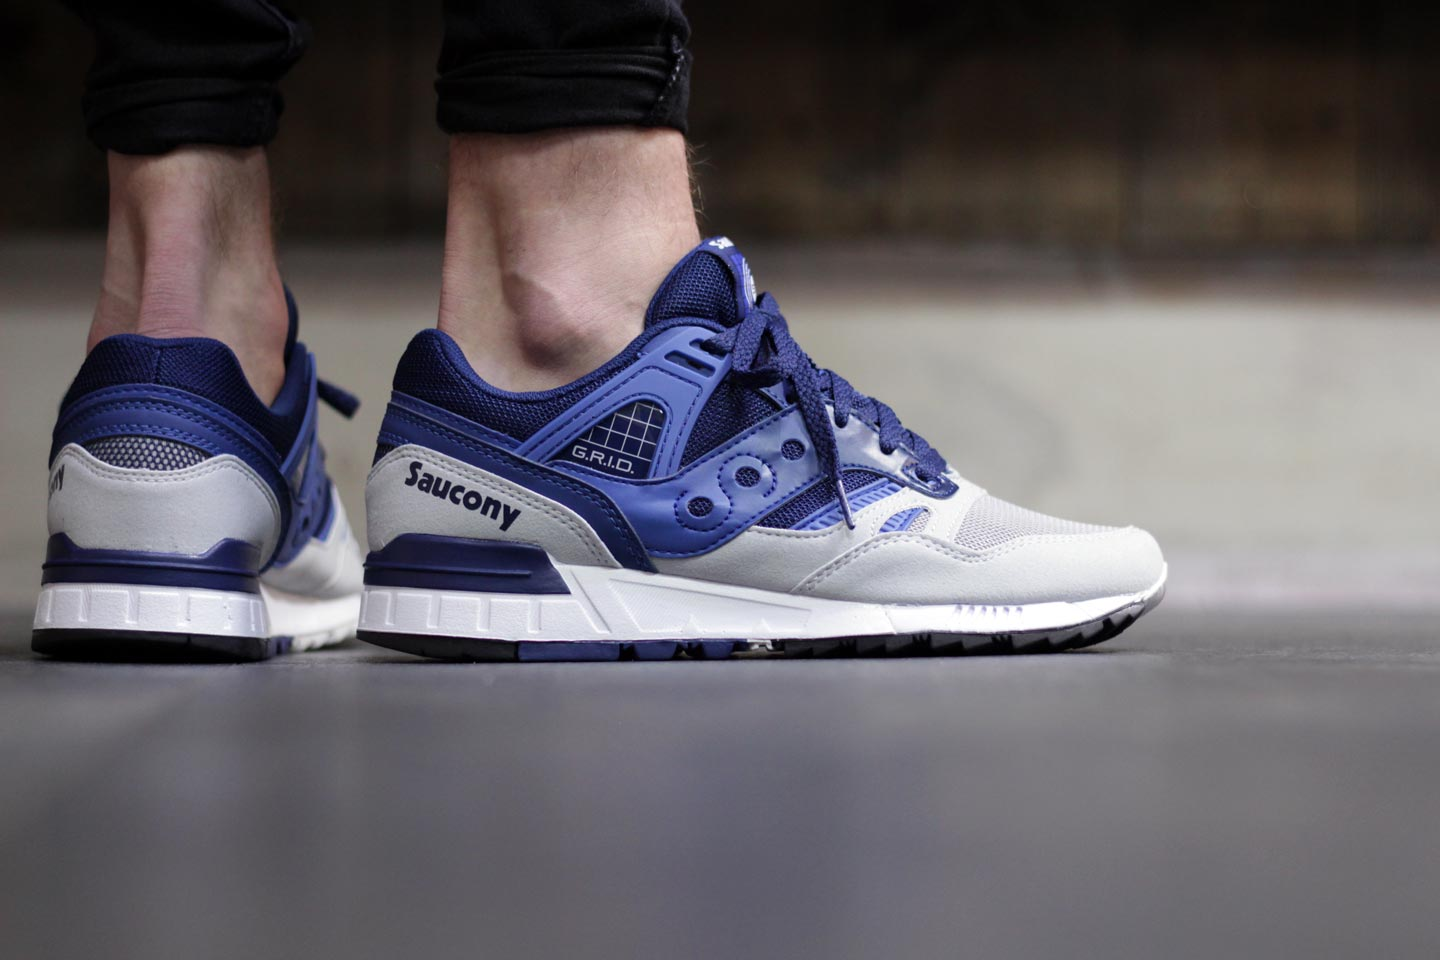 Saucony Grey And Blue Shoes